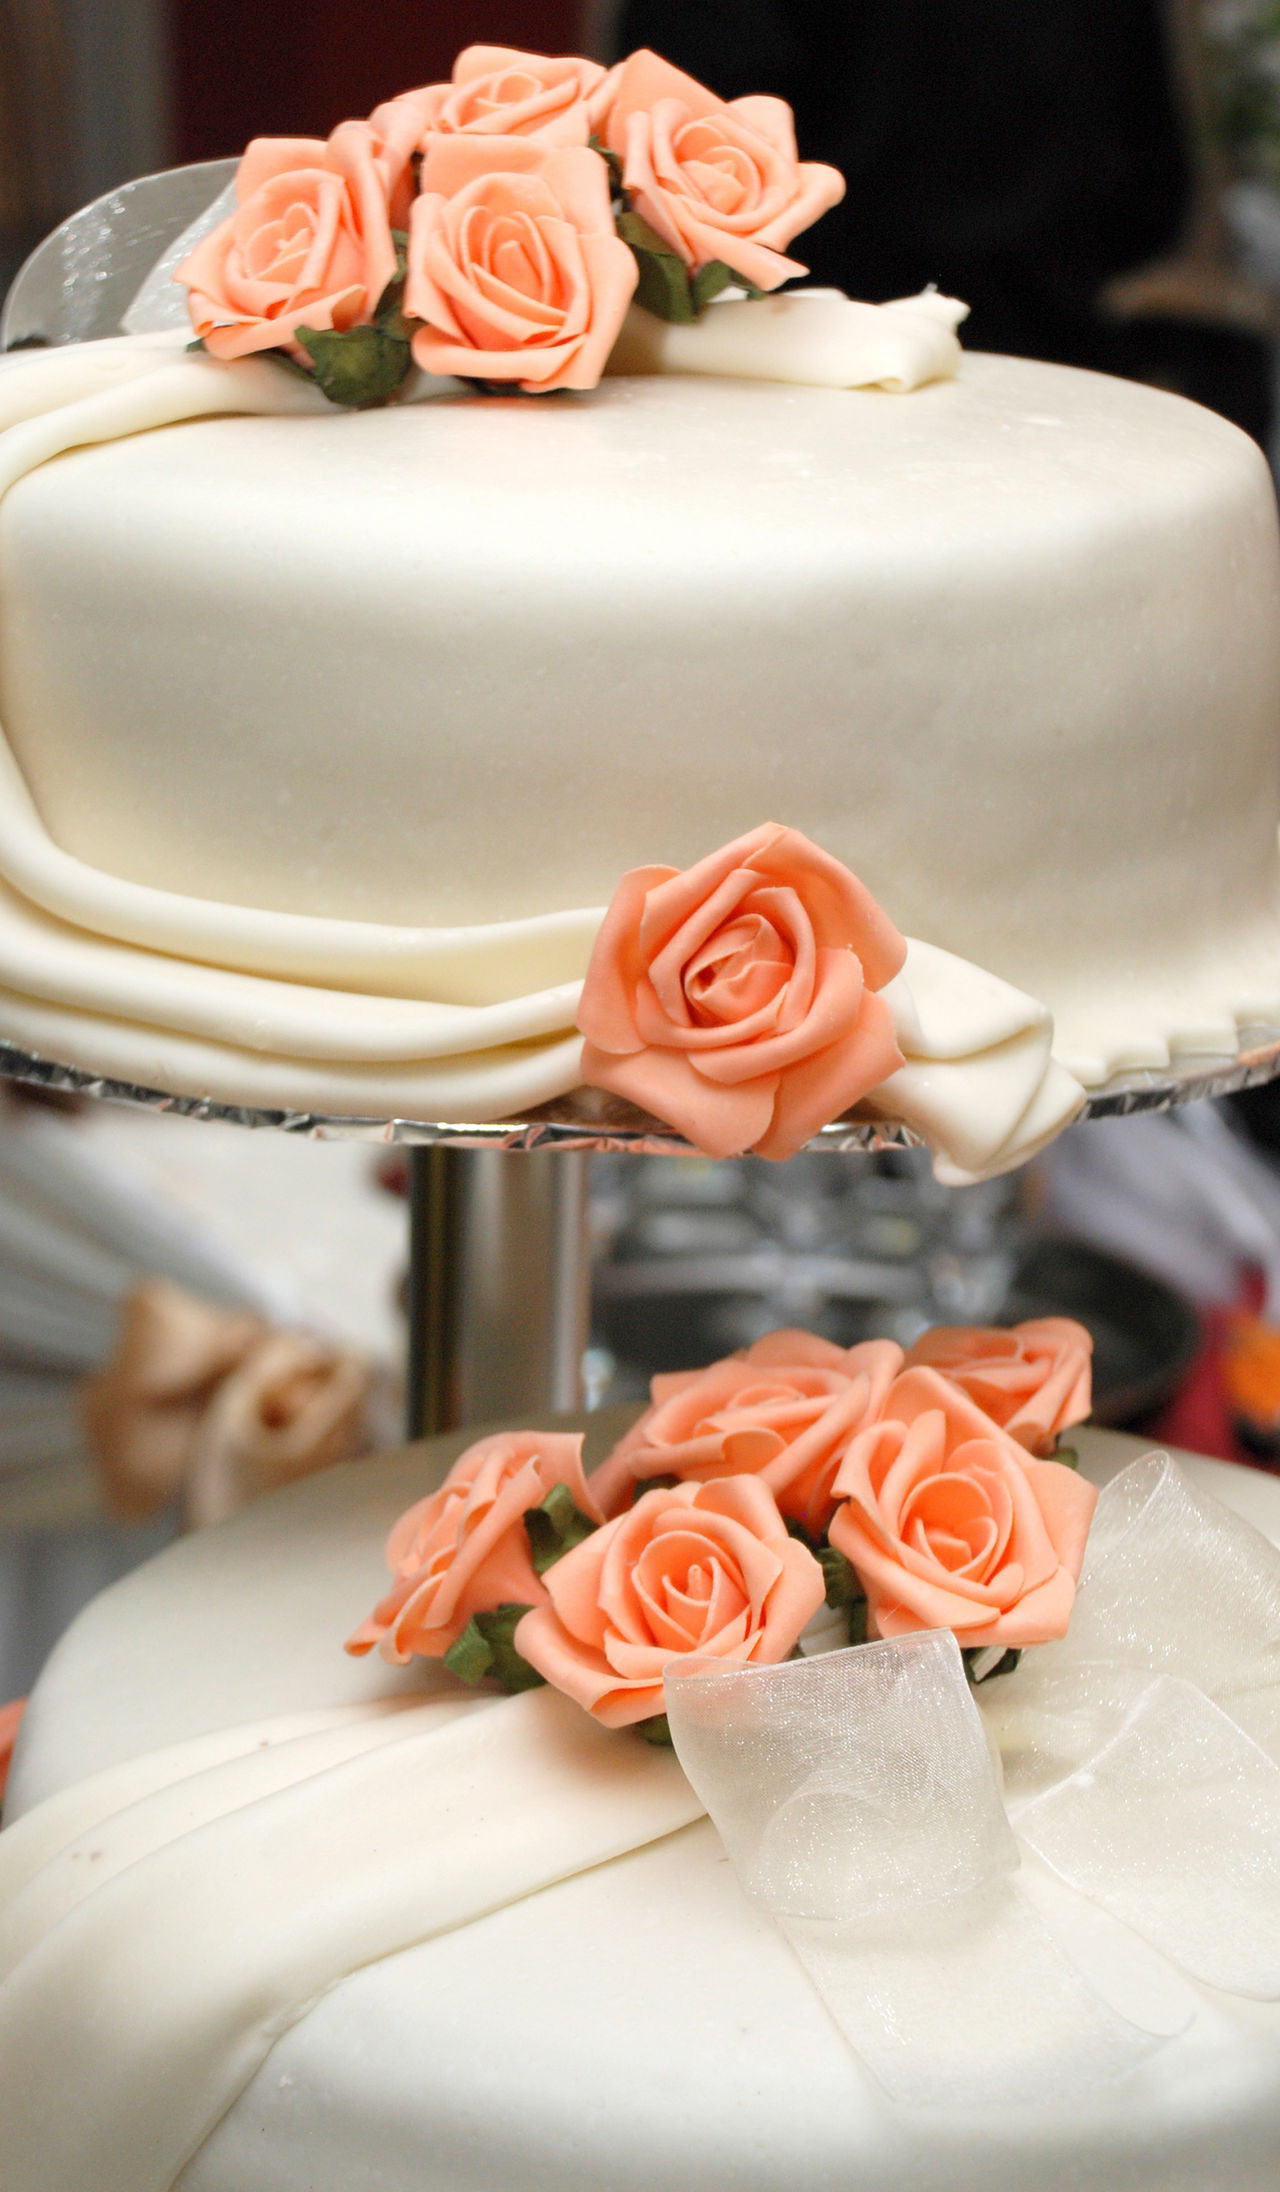 white wedding cake Close-up Flower Food Food And Drink Freshness Indoors  No People Pink Roses Ready-to-eat Rose - Flower Sweet Food Temptation Wedding Wedding Cake